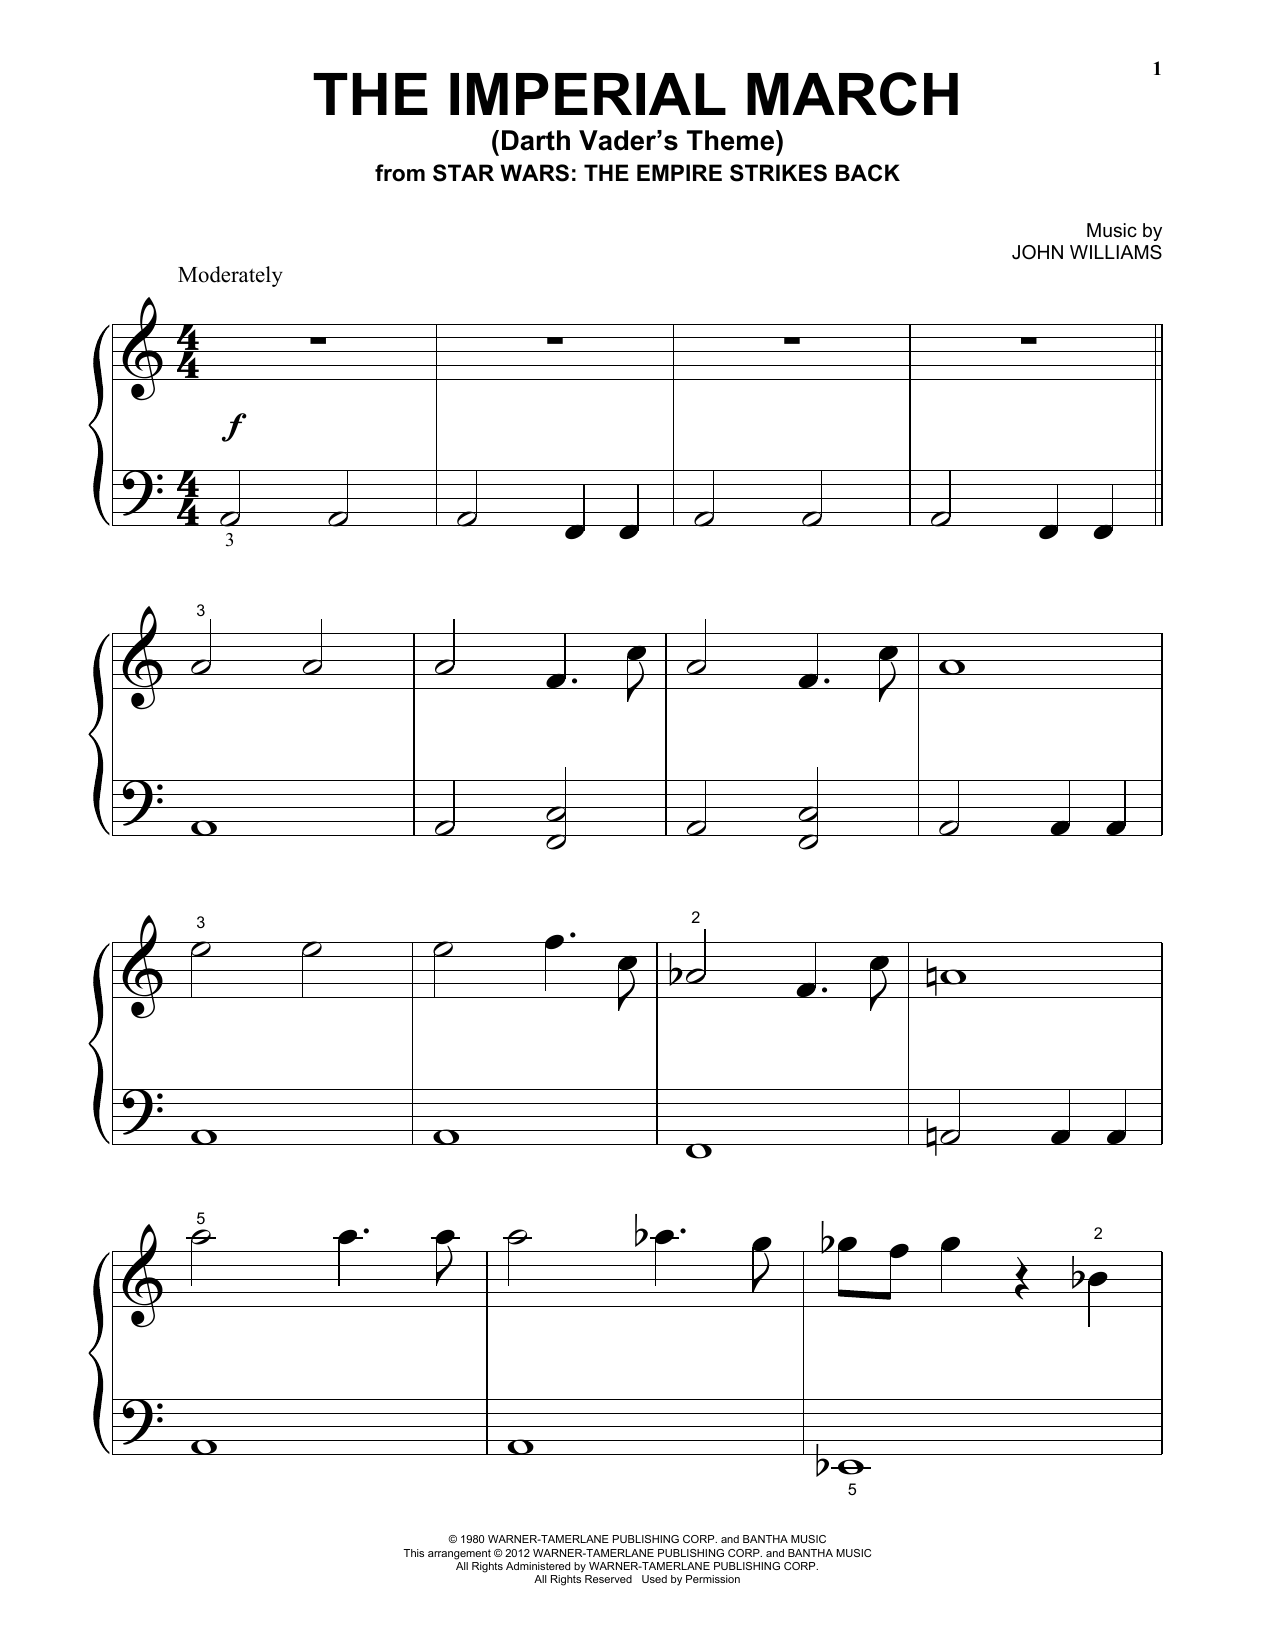 John Williams 'The Imperial March (Darth Vader's Theme)' Sheet Music Notes,  Chords | Download Printable Accordion - SKU: 168709